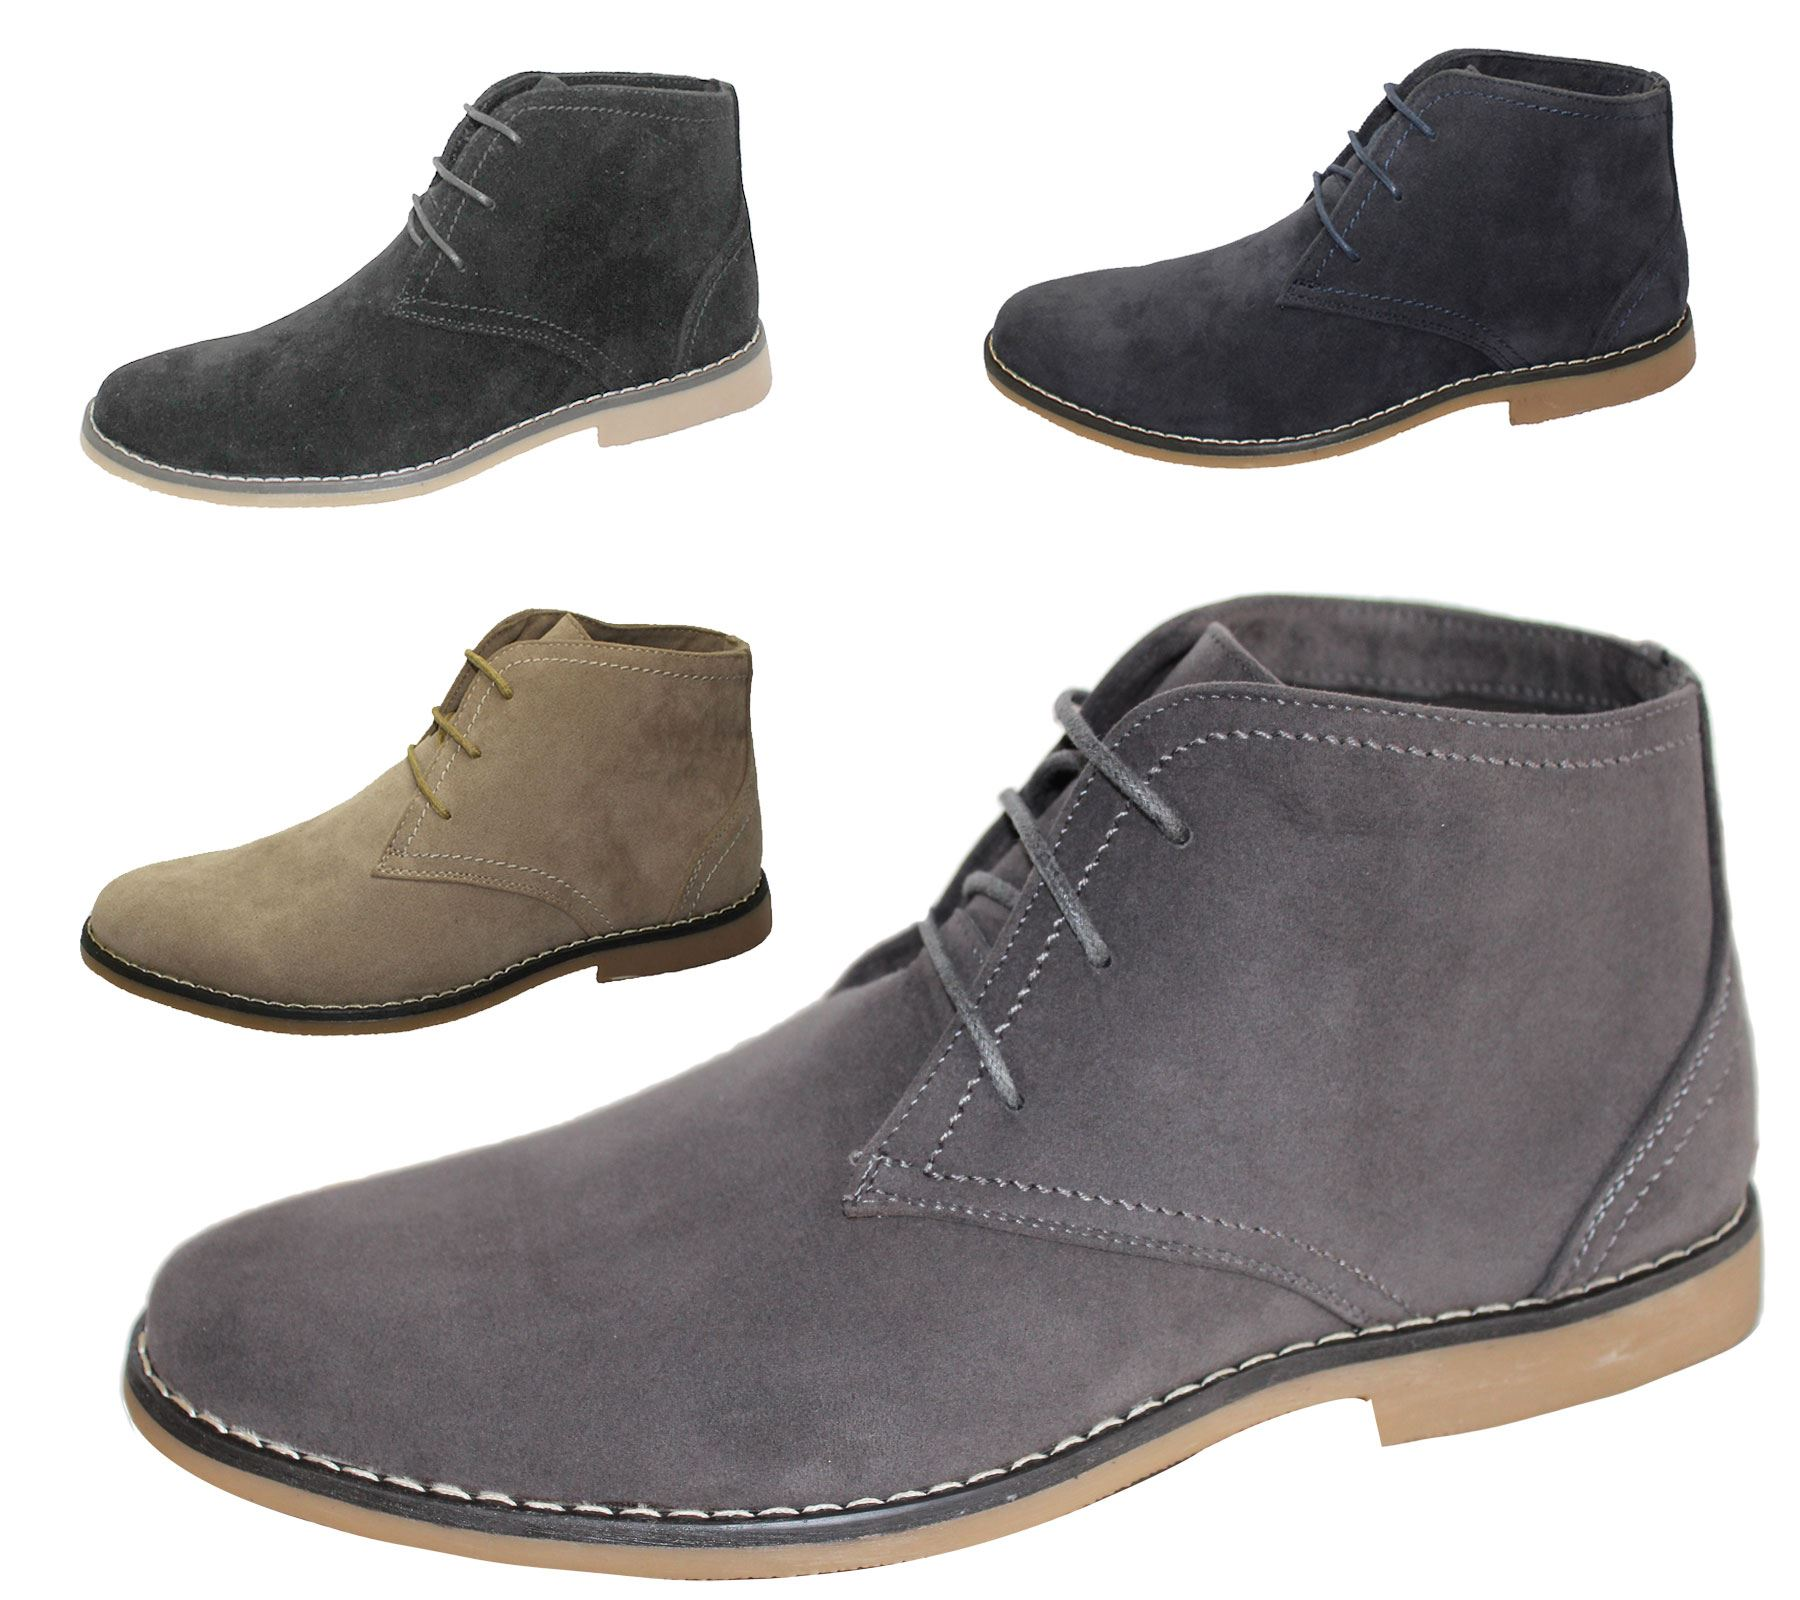 Mens Synthetic Suede Desert Boots Casual Lace Up Winter Ankle ...